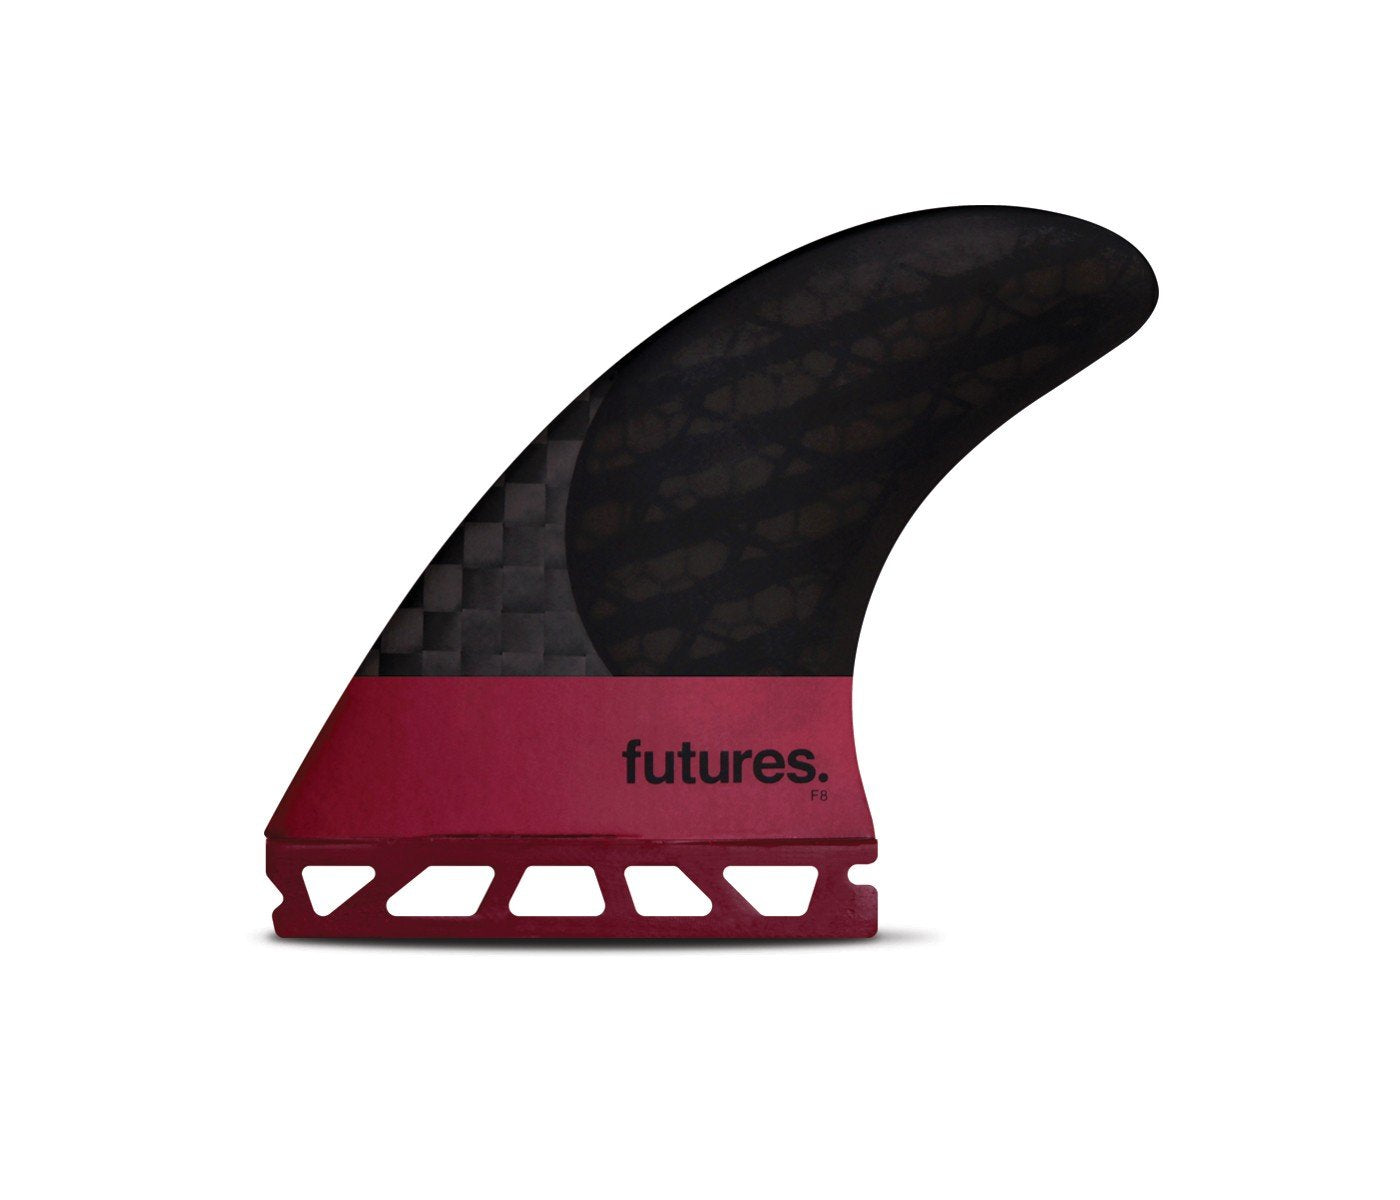 FUTURES V2 F8 LARGE BLACKSTIX 3.0 THRUSTER